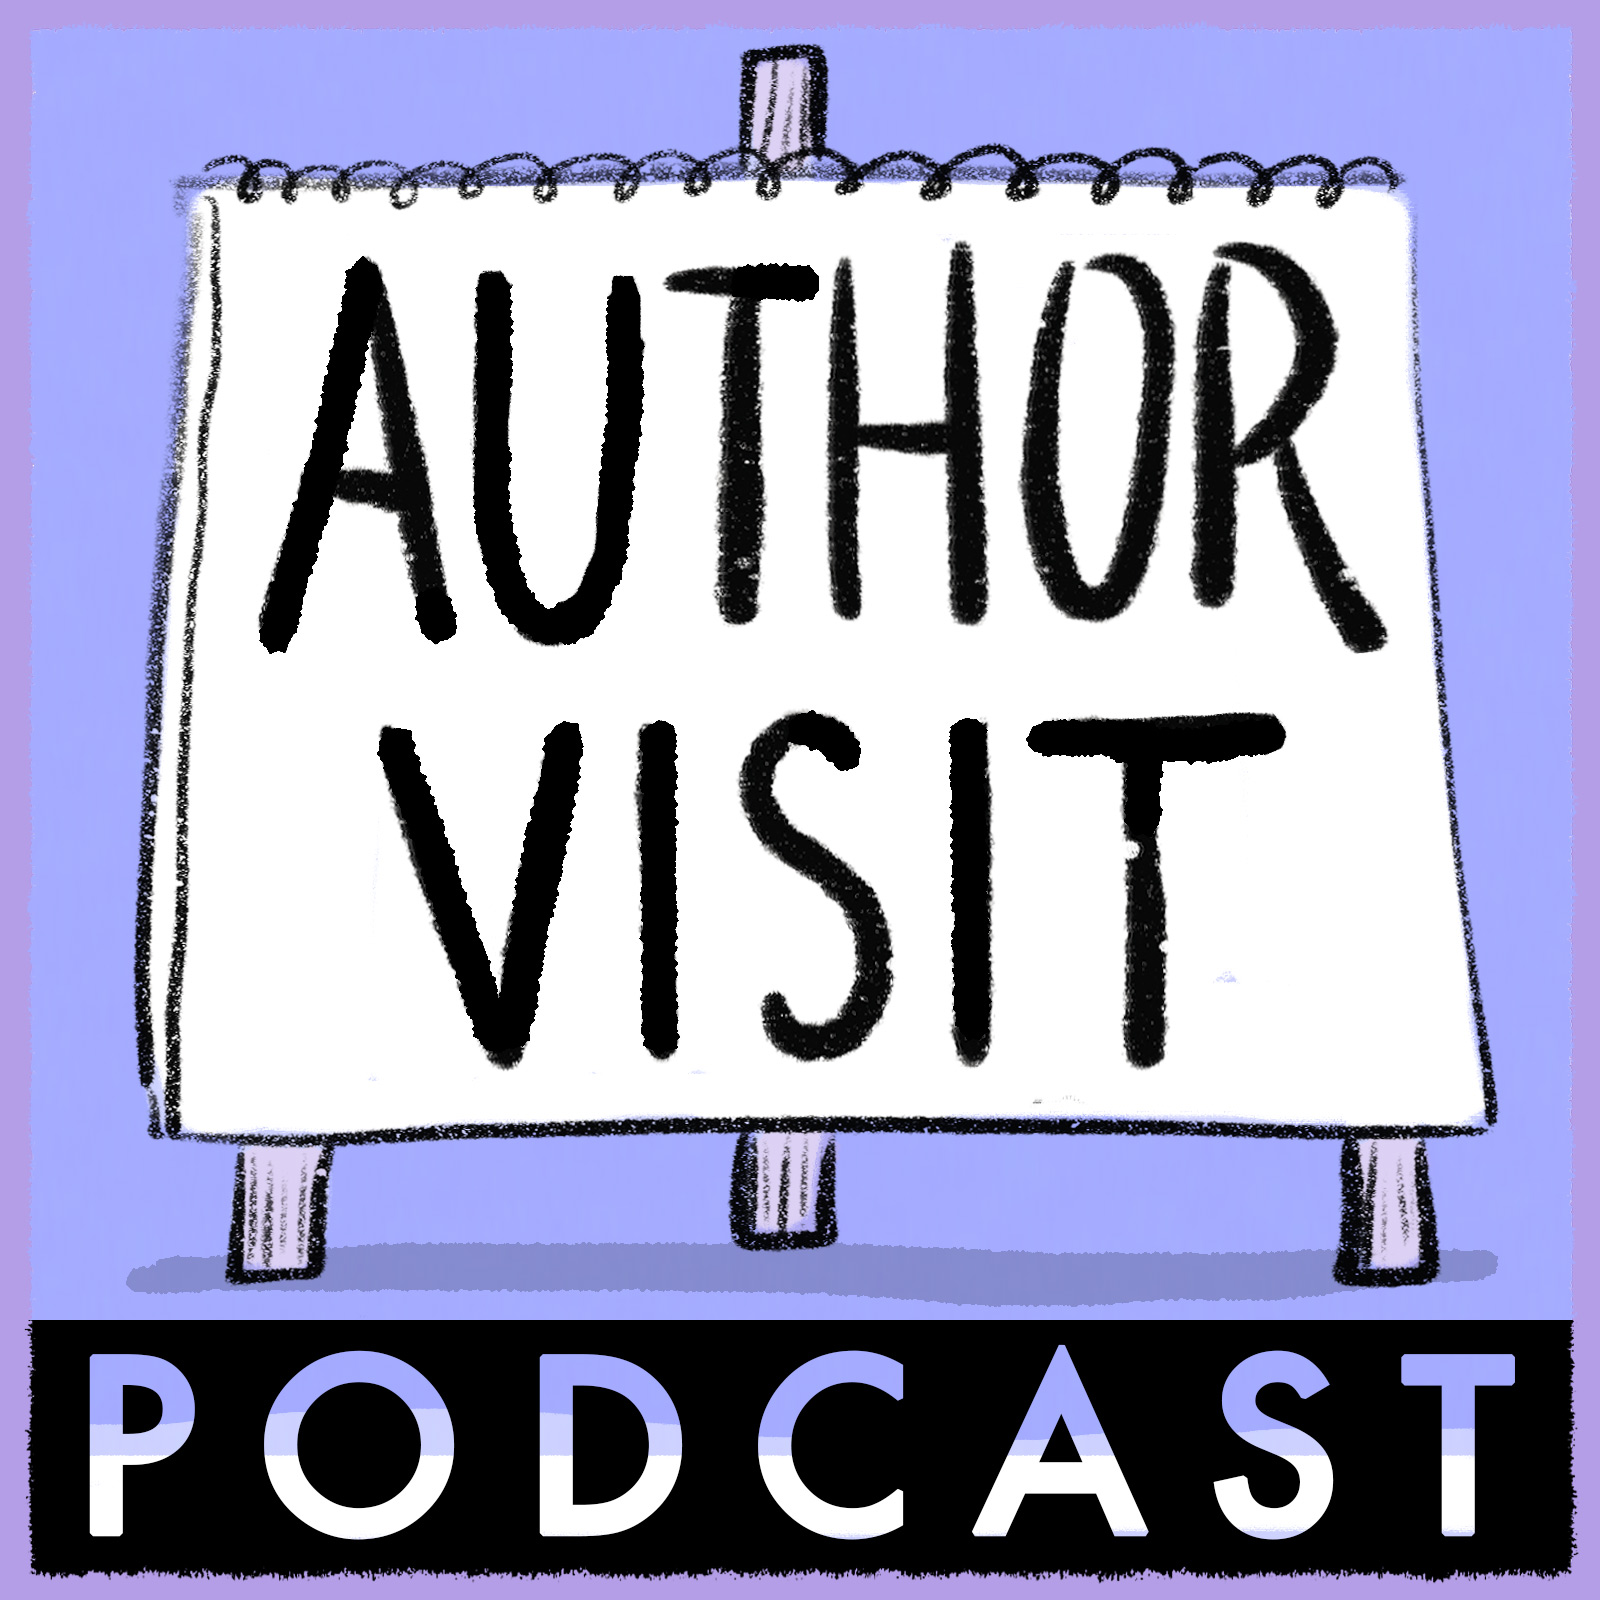 Author Visit Podcast logo